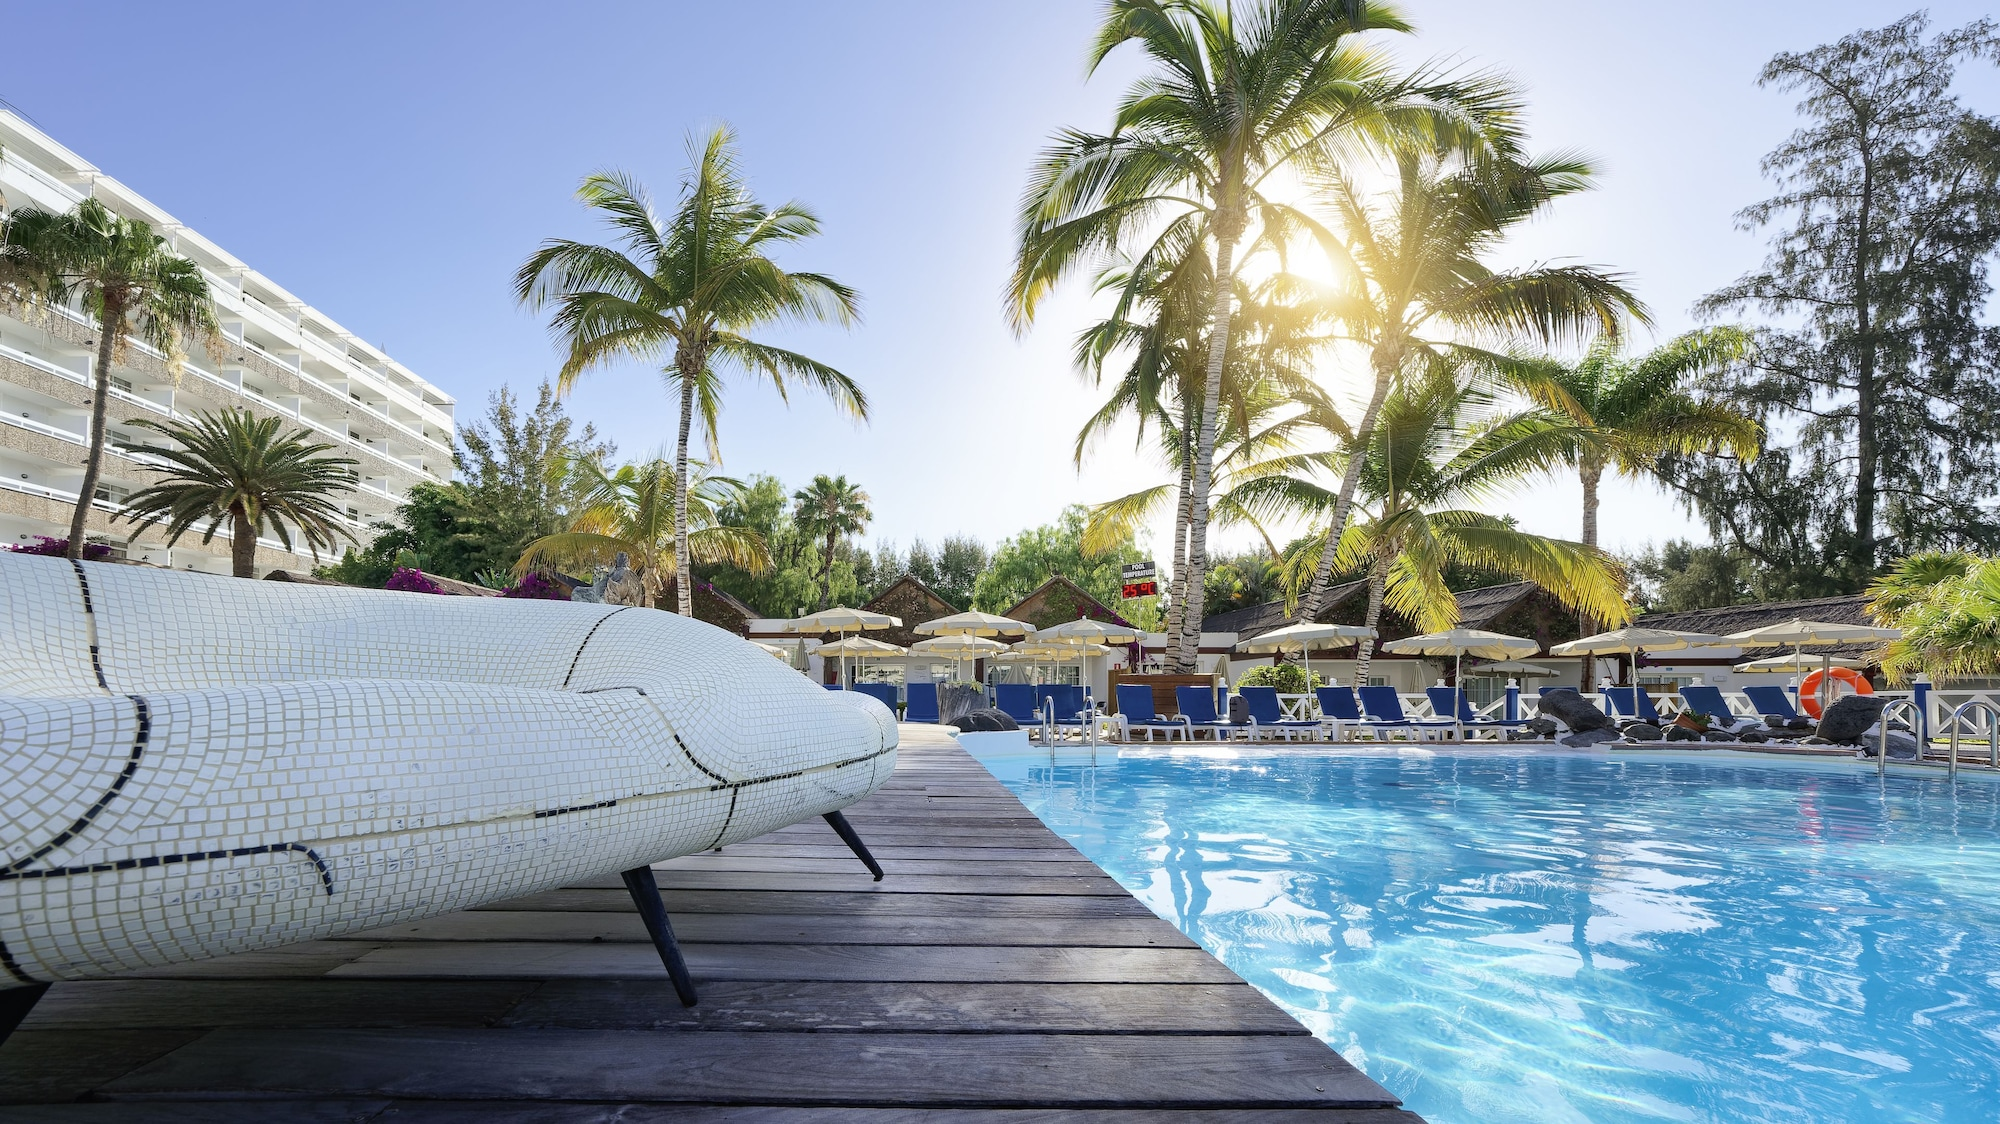 Hotel Costa Canaria & Spa - Adults only, Las Palmas